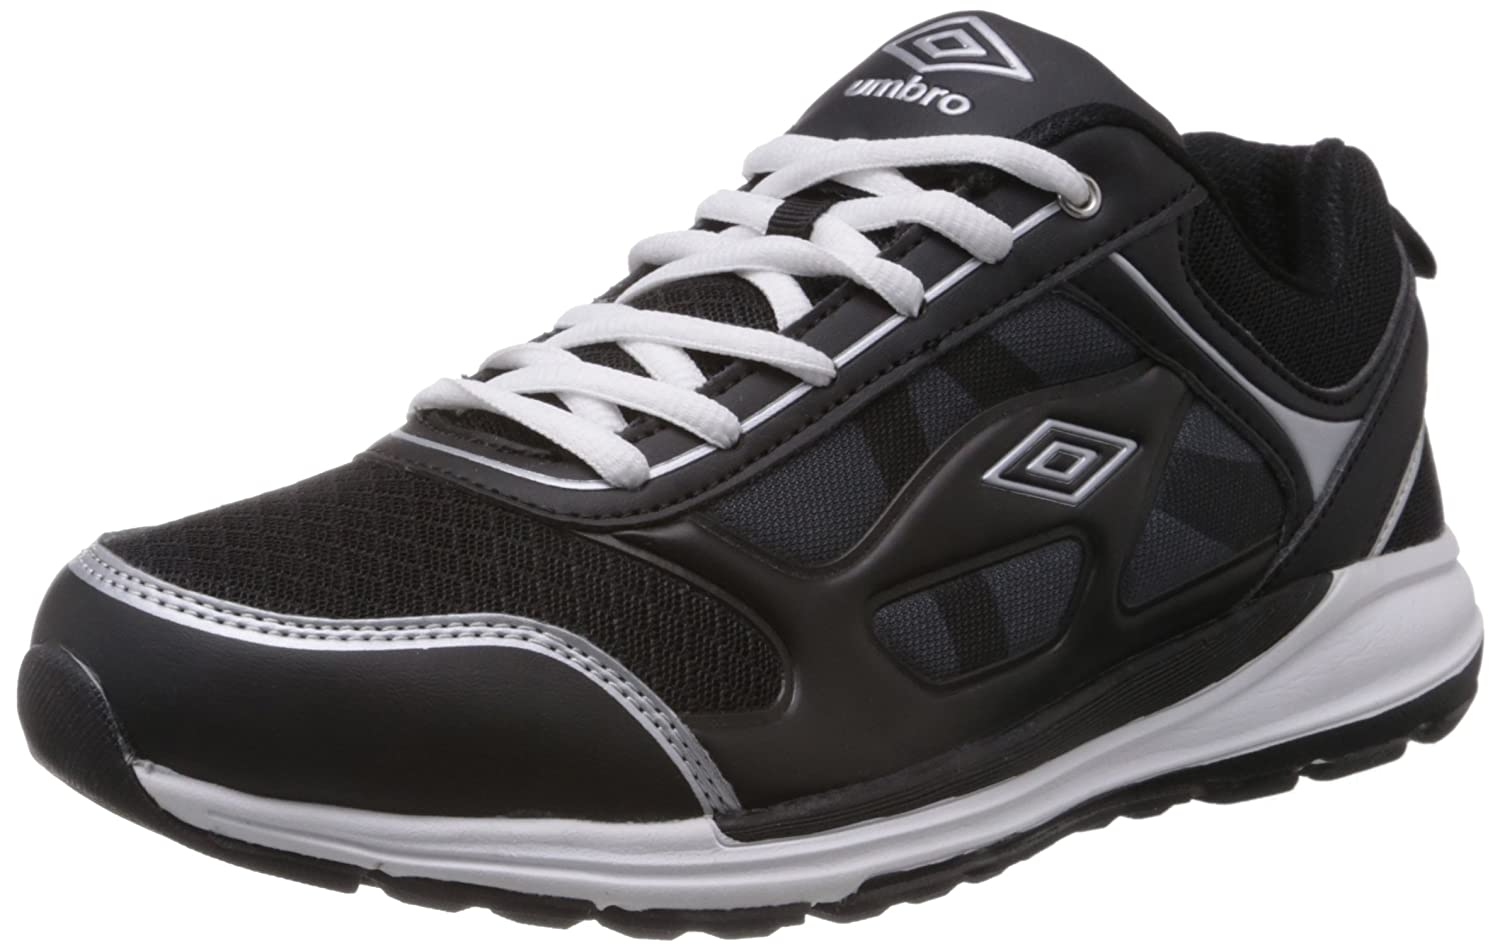 umbro shoes without laces